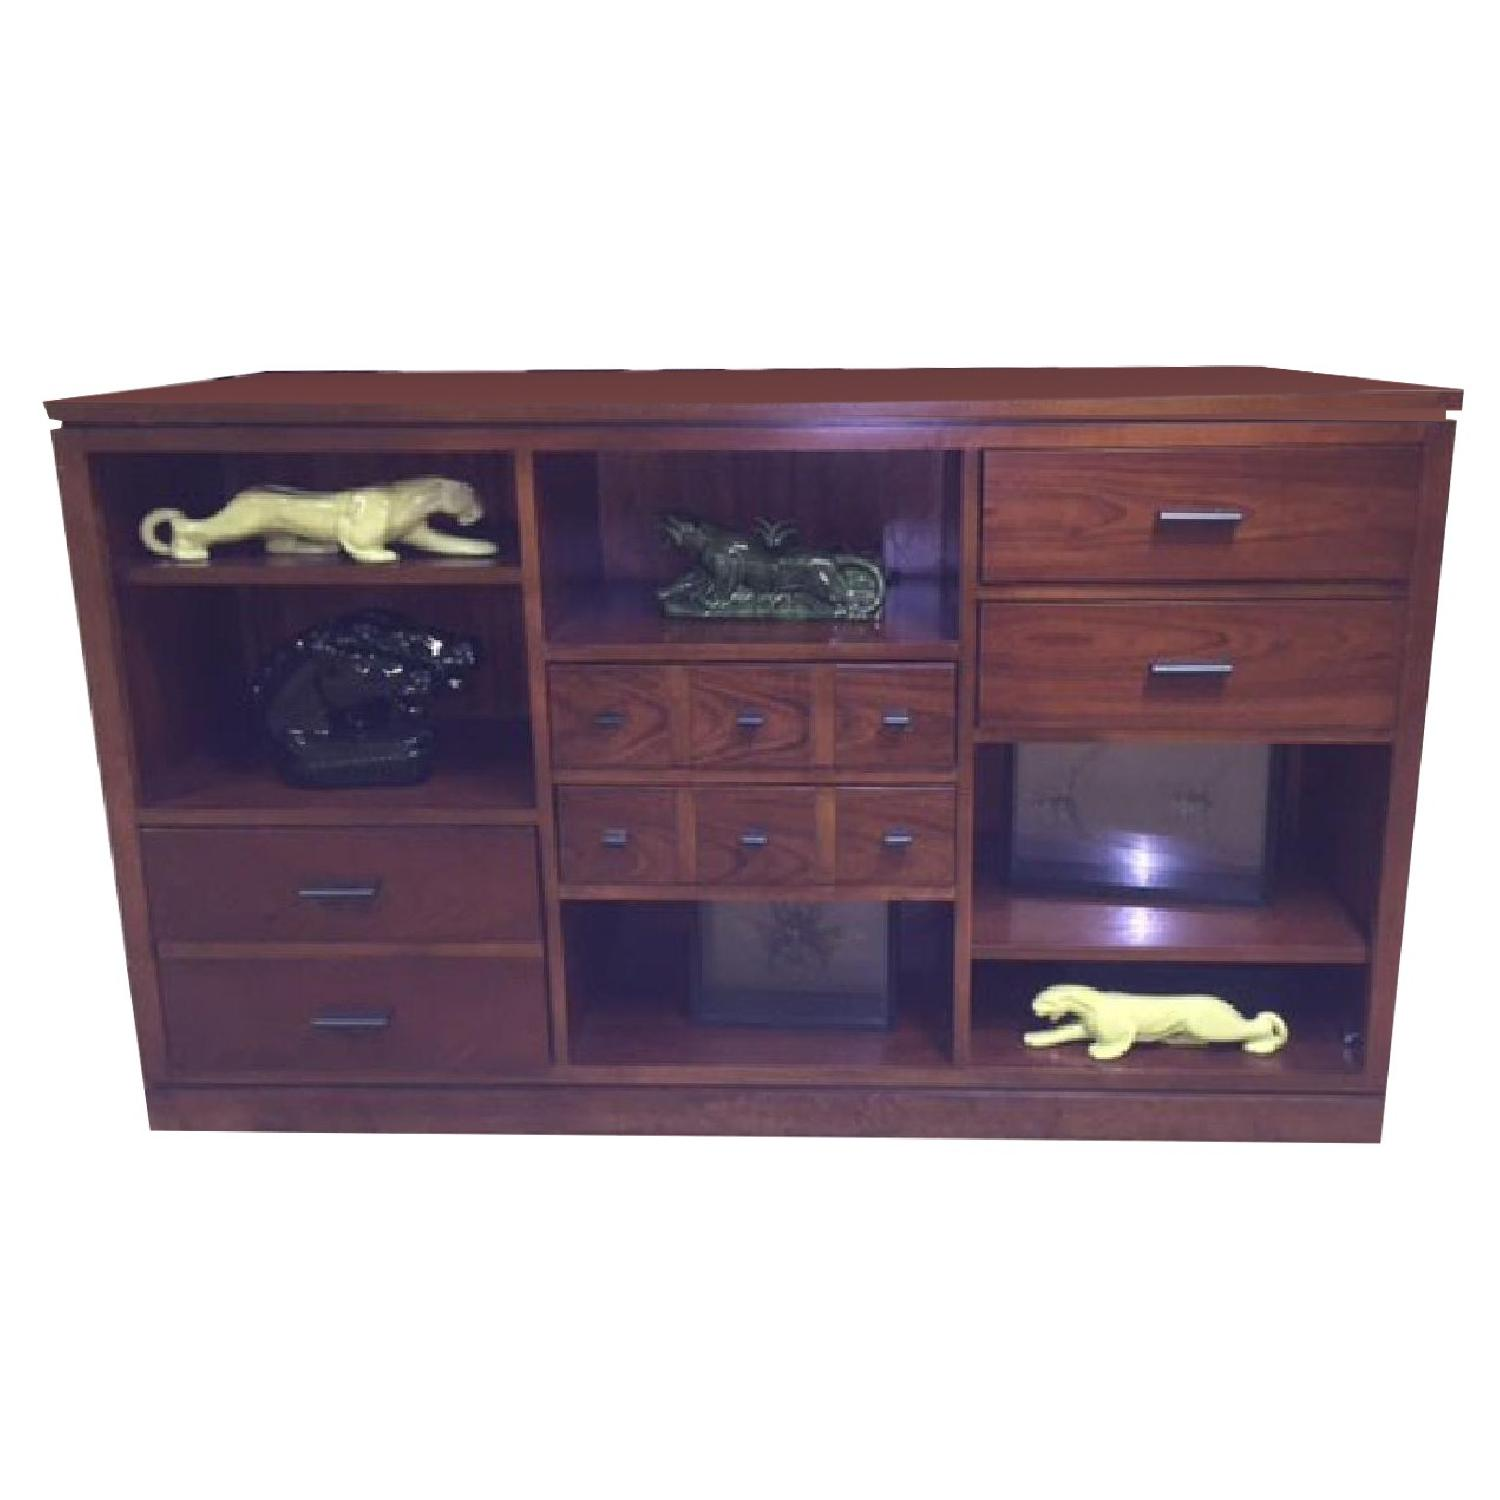 Stanley Furniture Bookcase with Drawer Unit - image-0